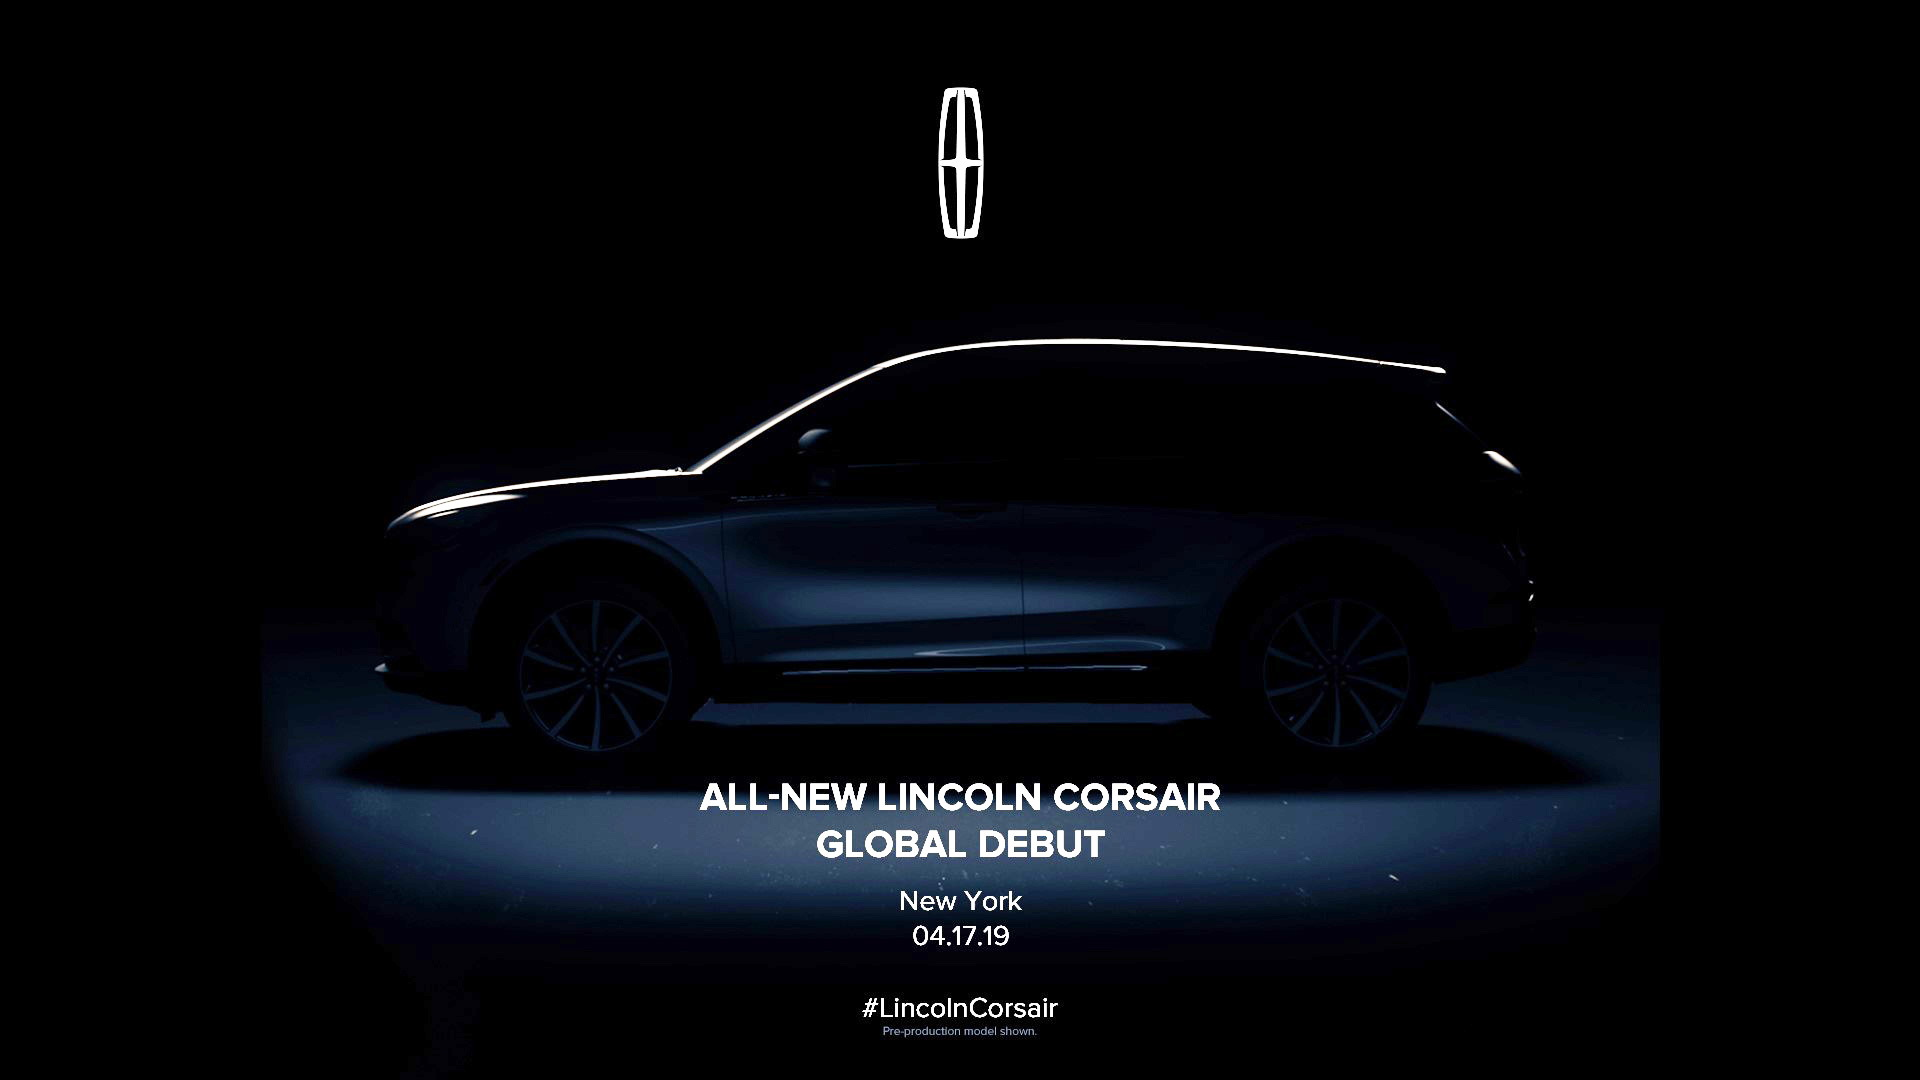 Teaser for 2020 Lincoln Corsair debuting at 2019 New York auto show